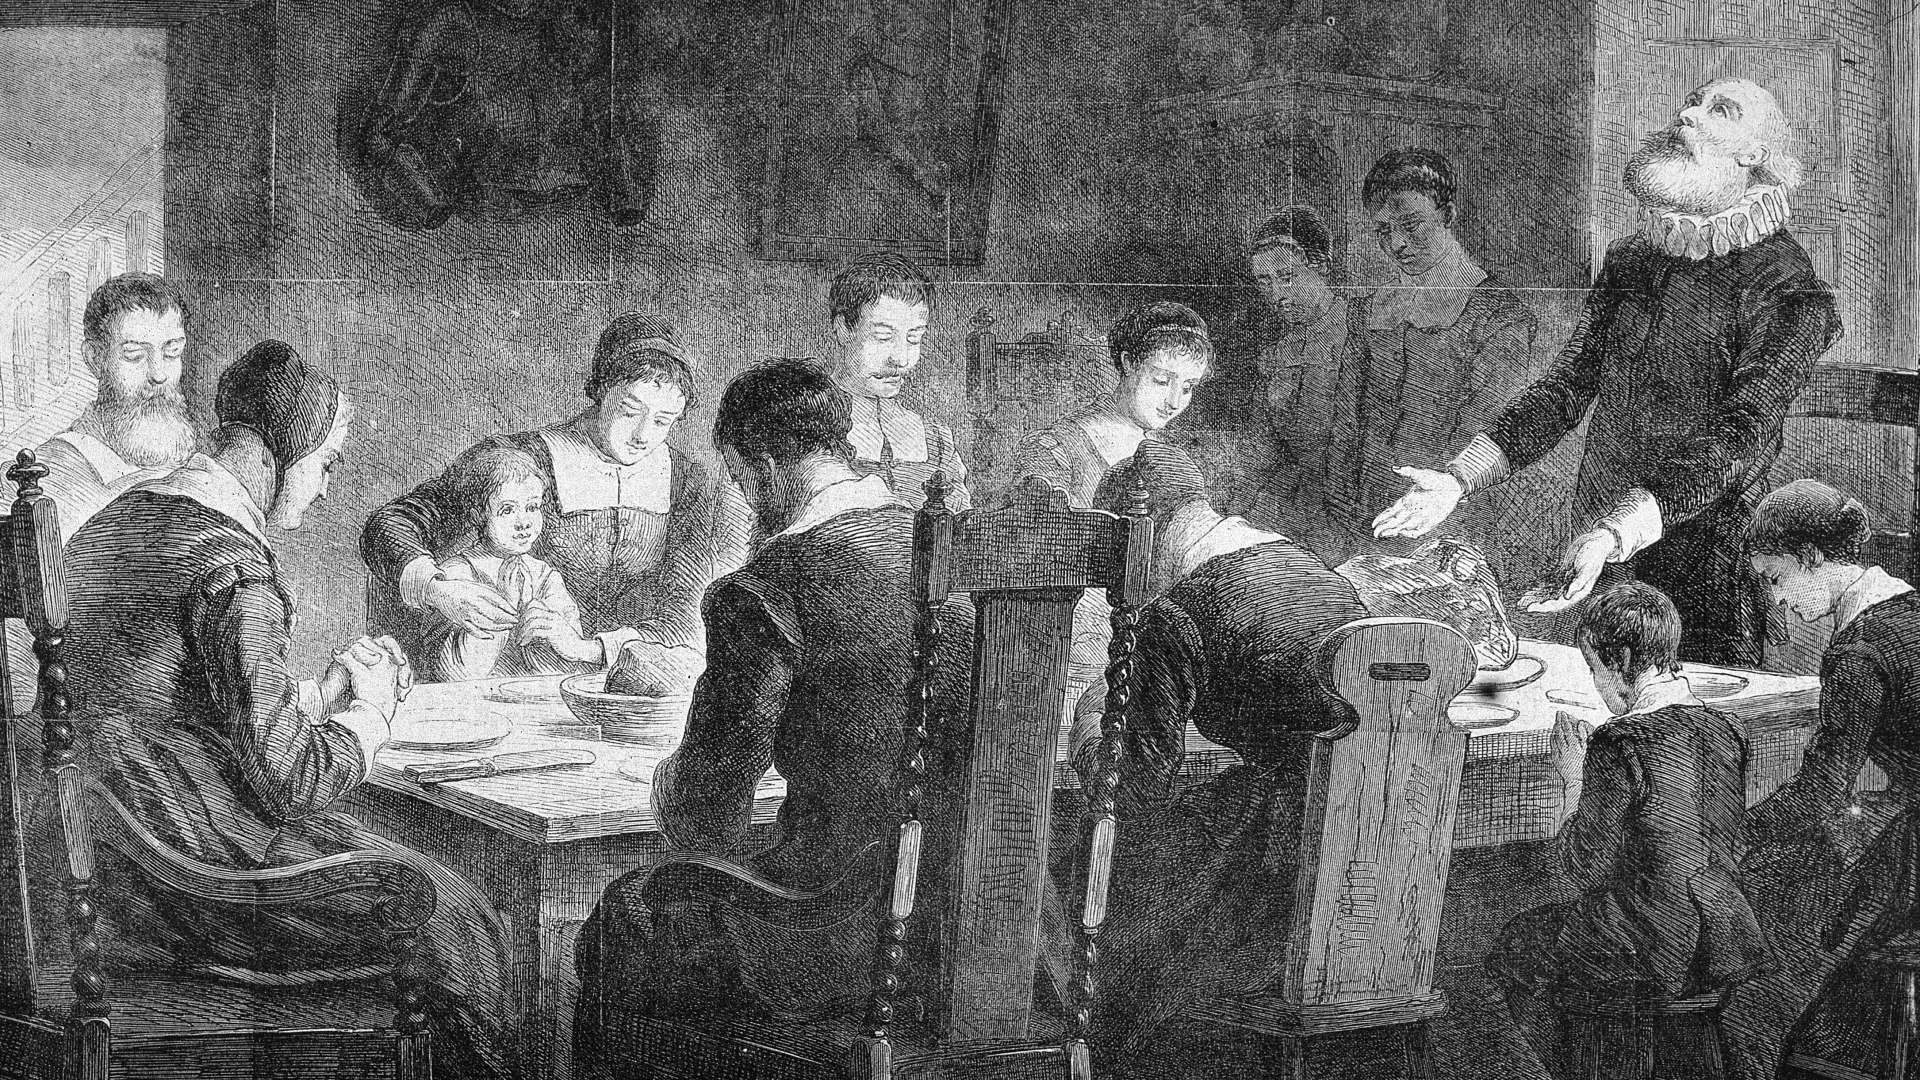 A man leading a blessing for Thanksgiving dinner, from an 1867 illustration. (Credit: Kean Collection/Getty Images)